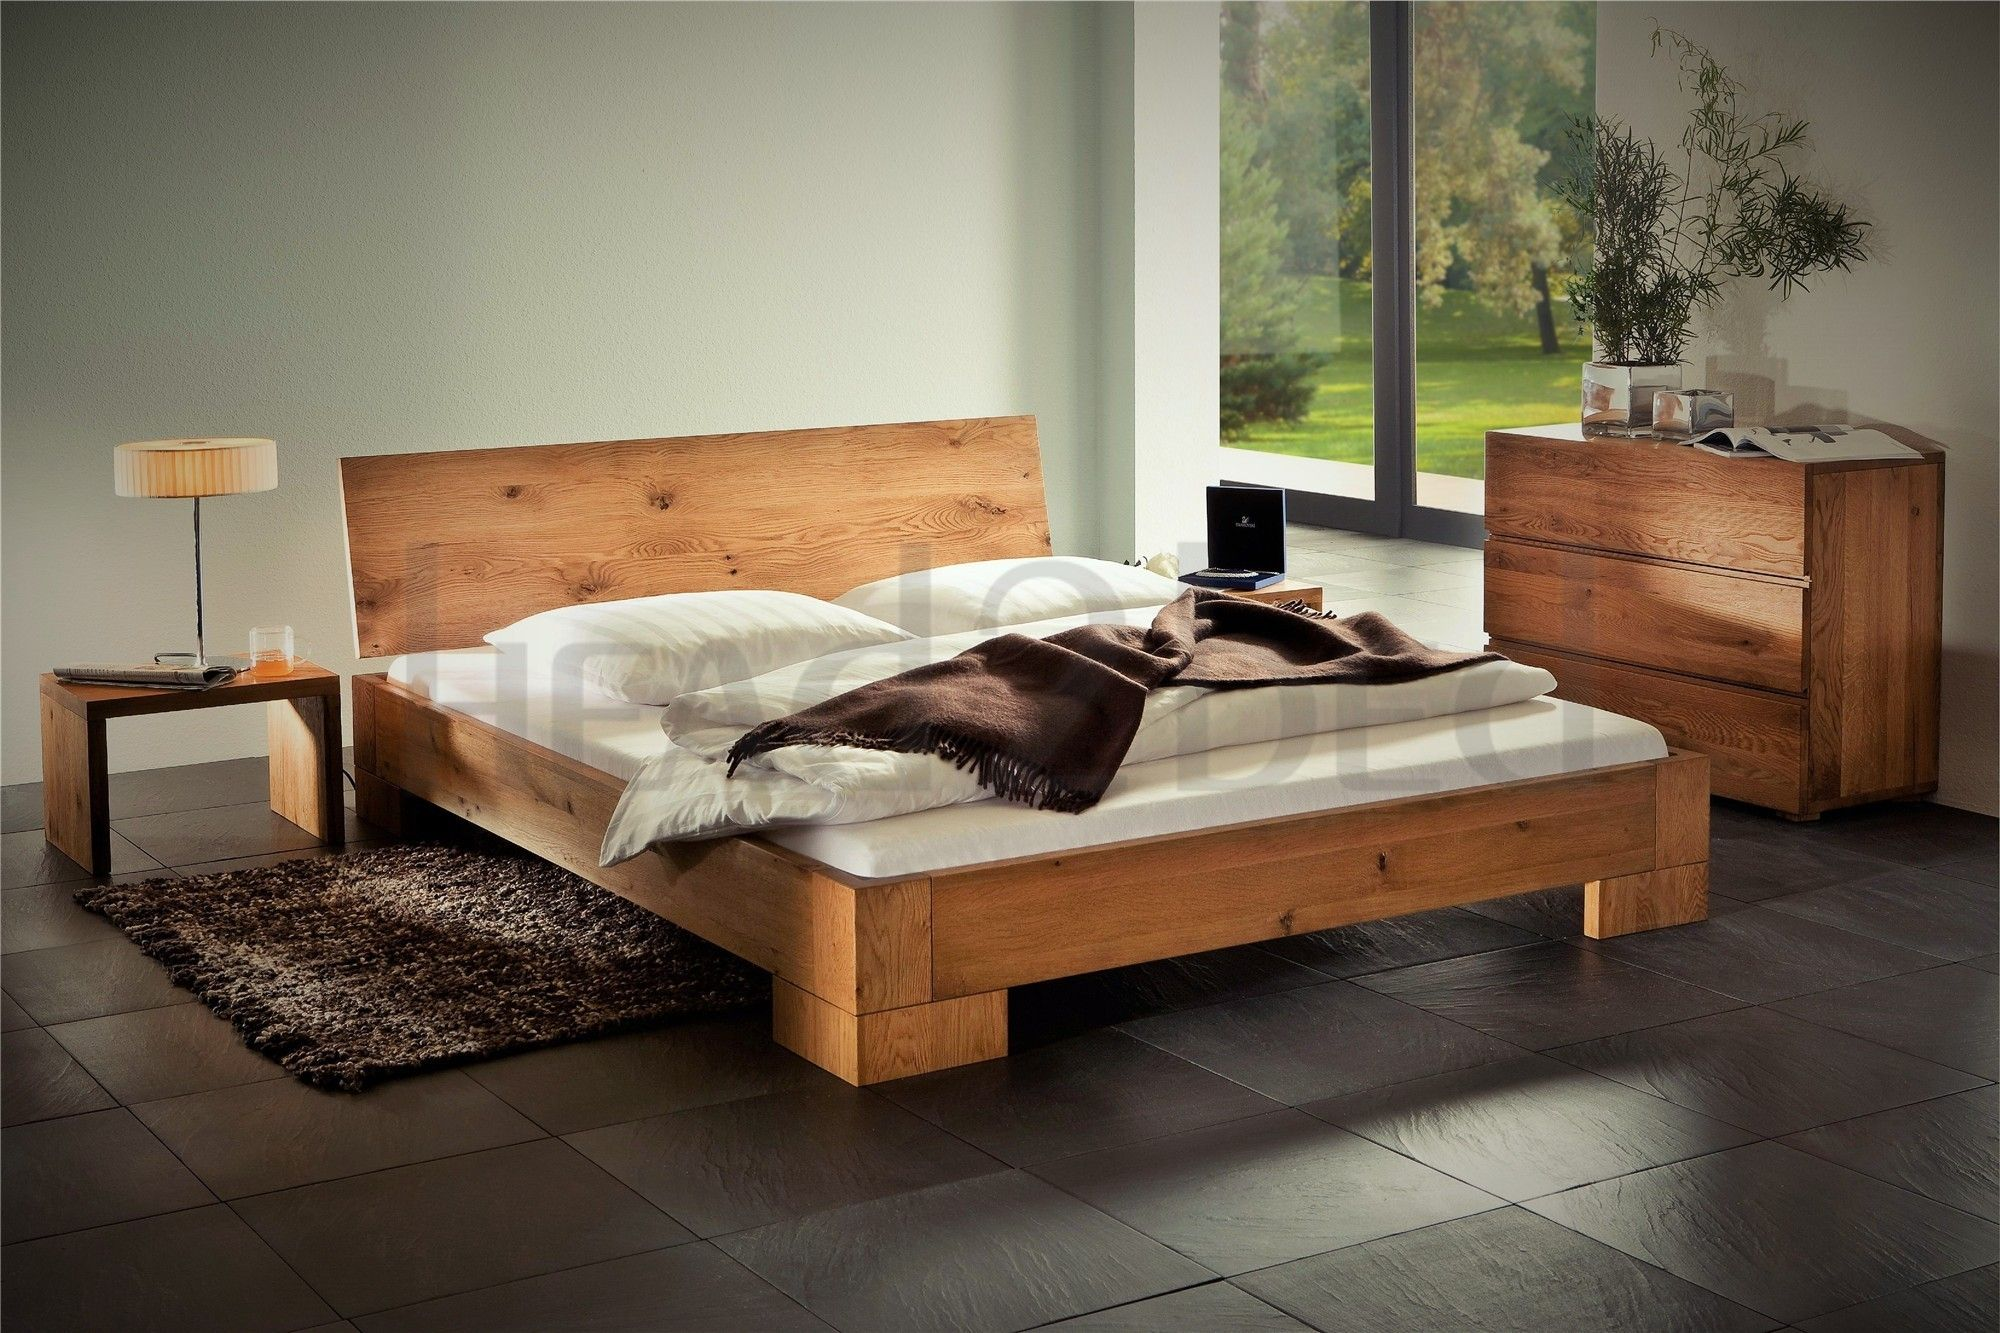 Natural Oak Oiled Solid Wooden Bed Homemade bed frame